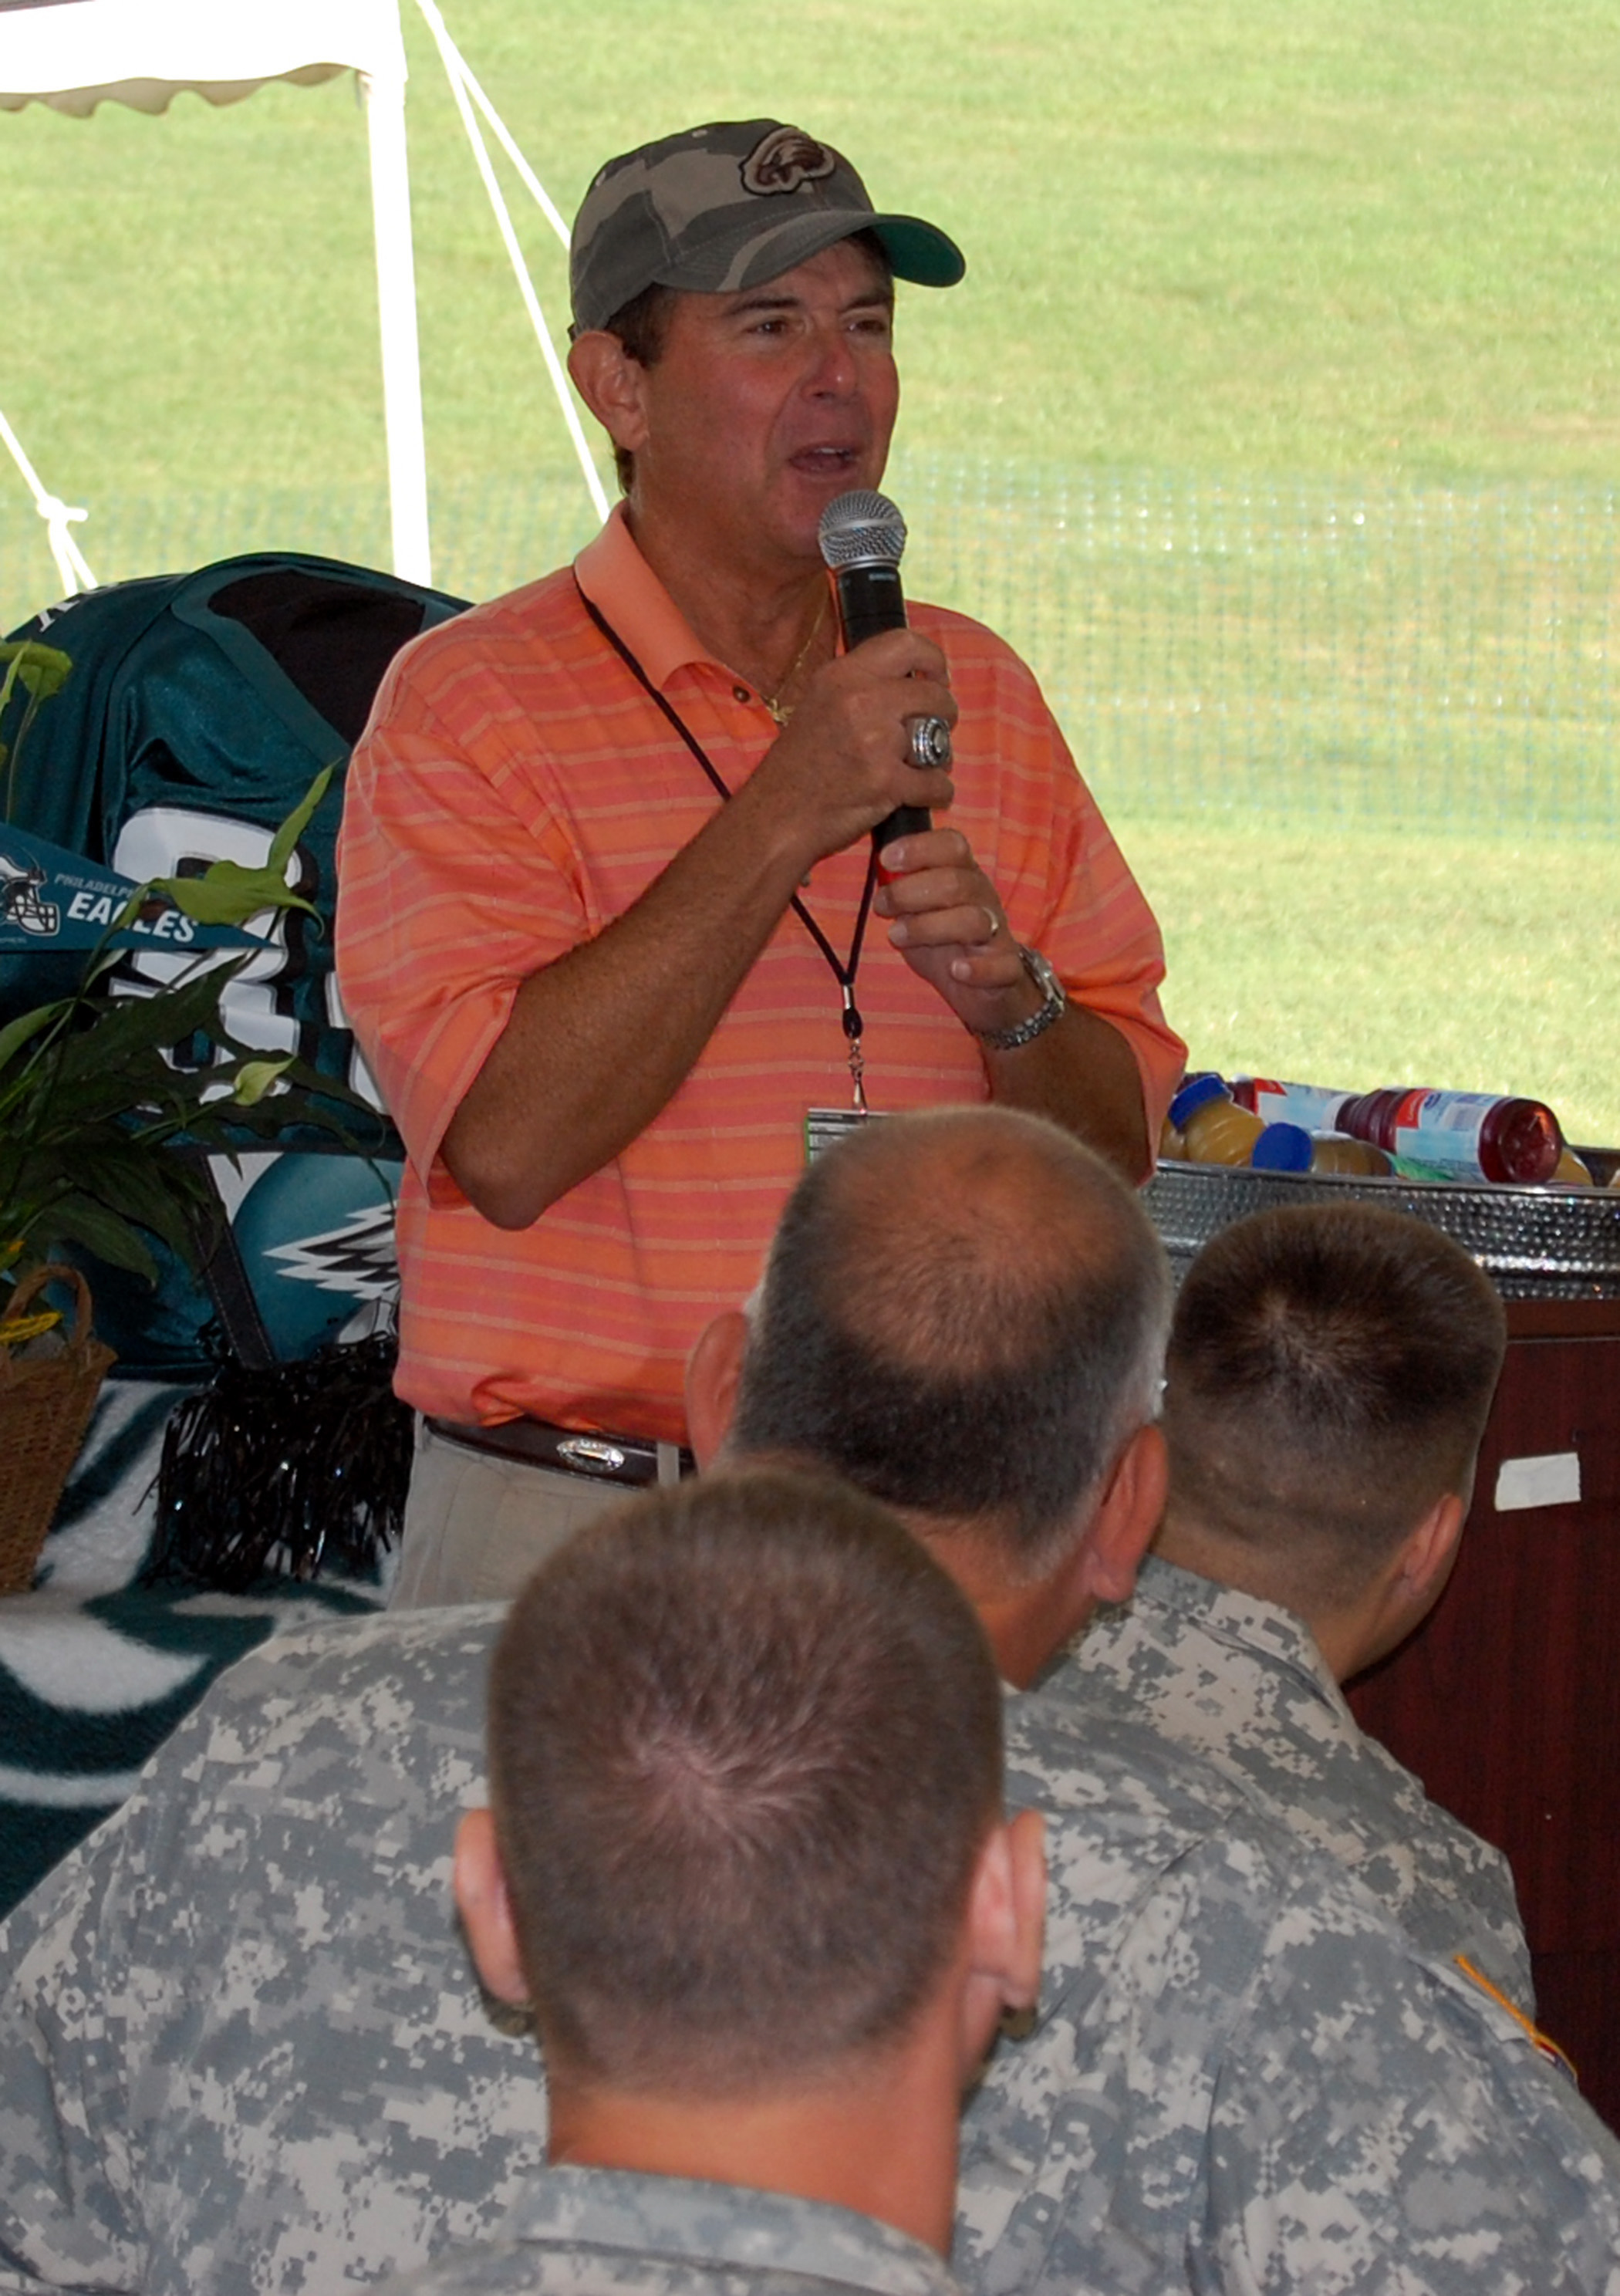 Leaders at NFL training camp highlight appreciation for military ... 549410808